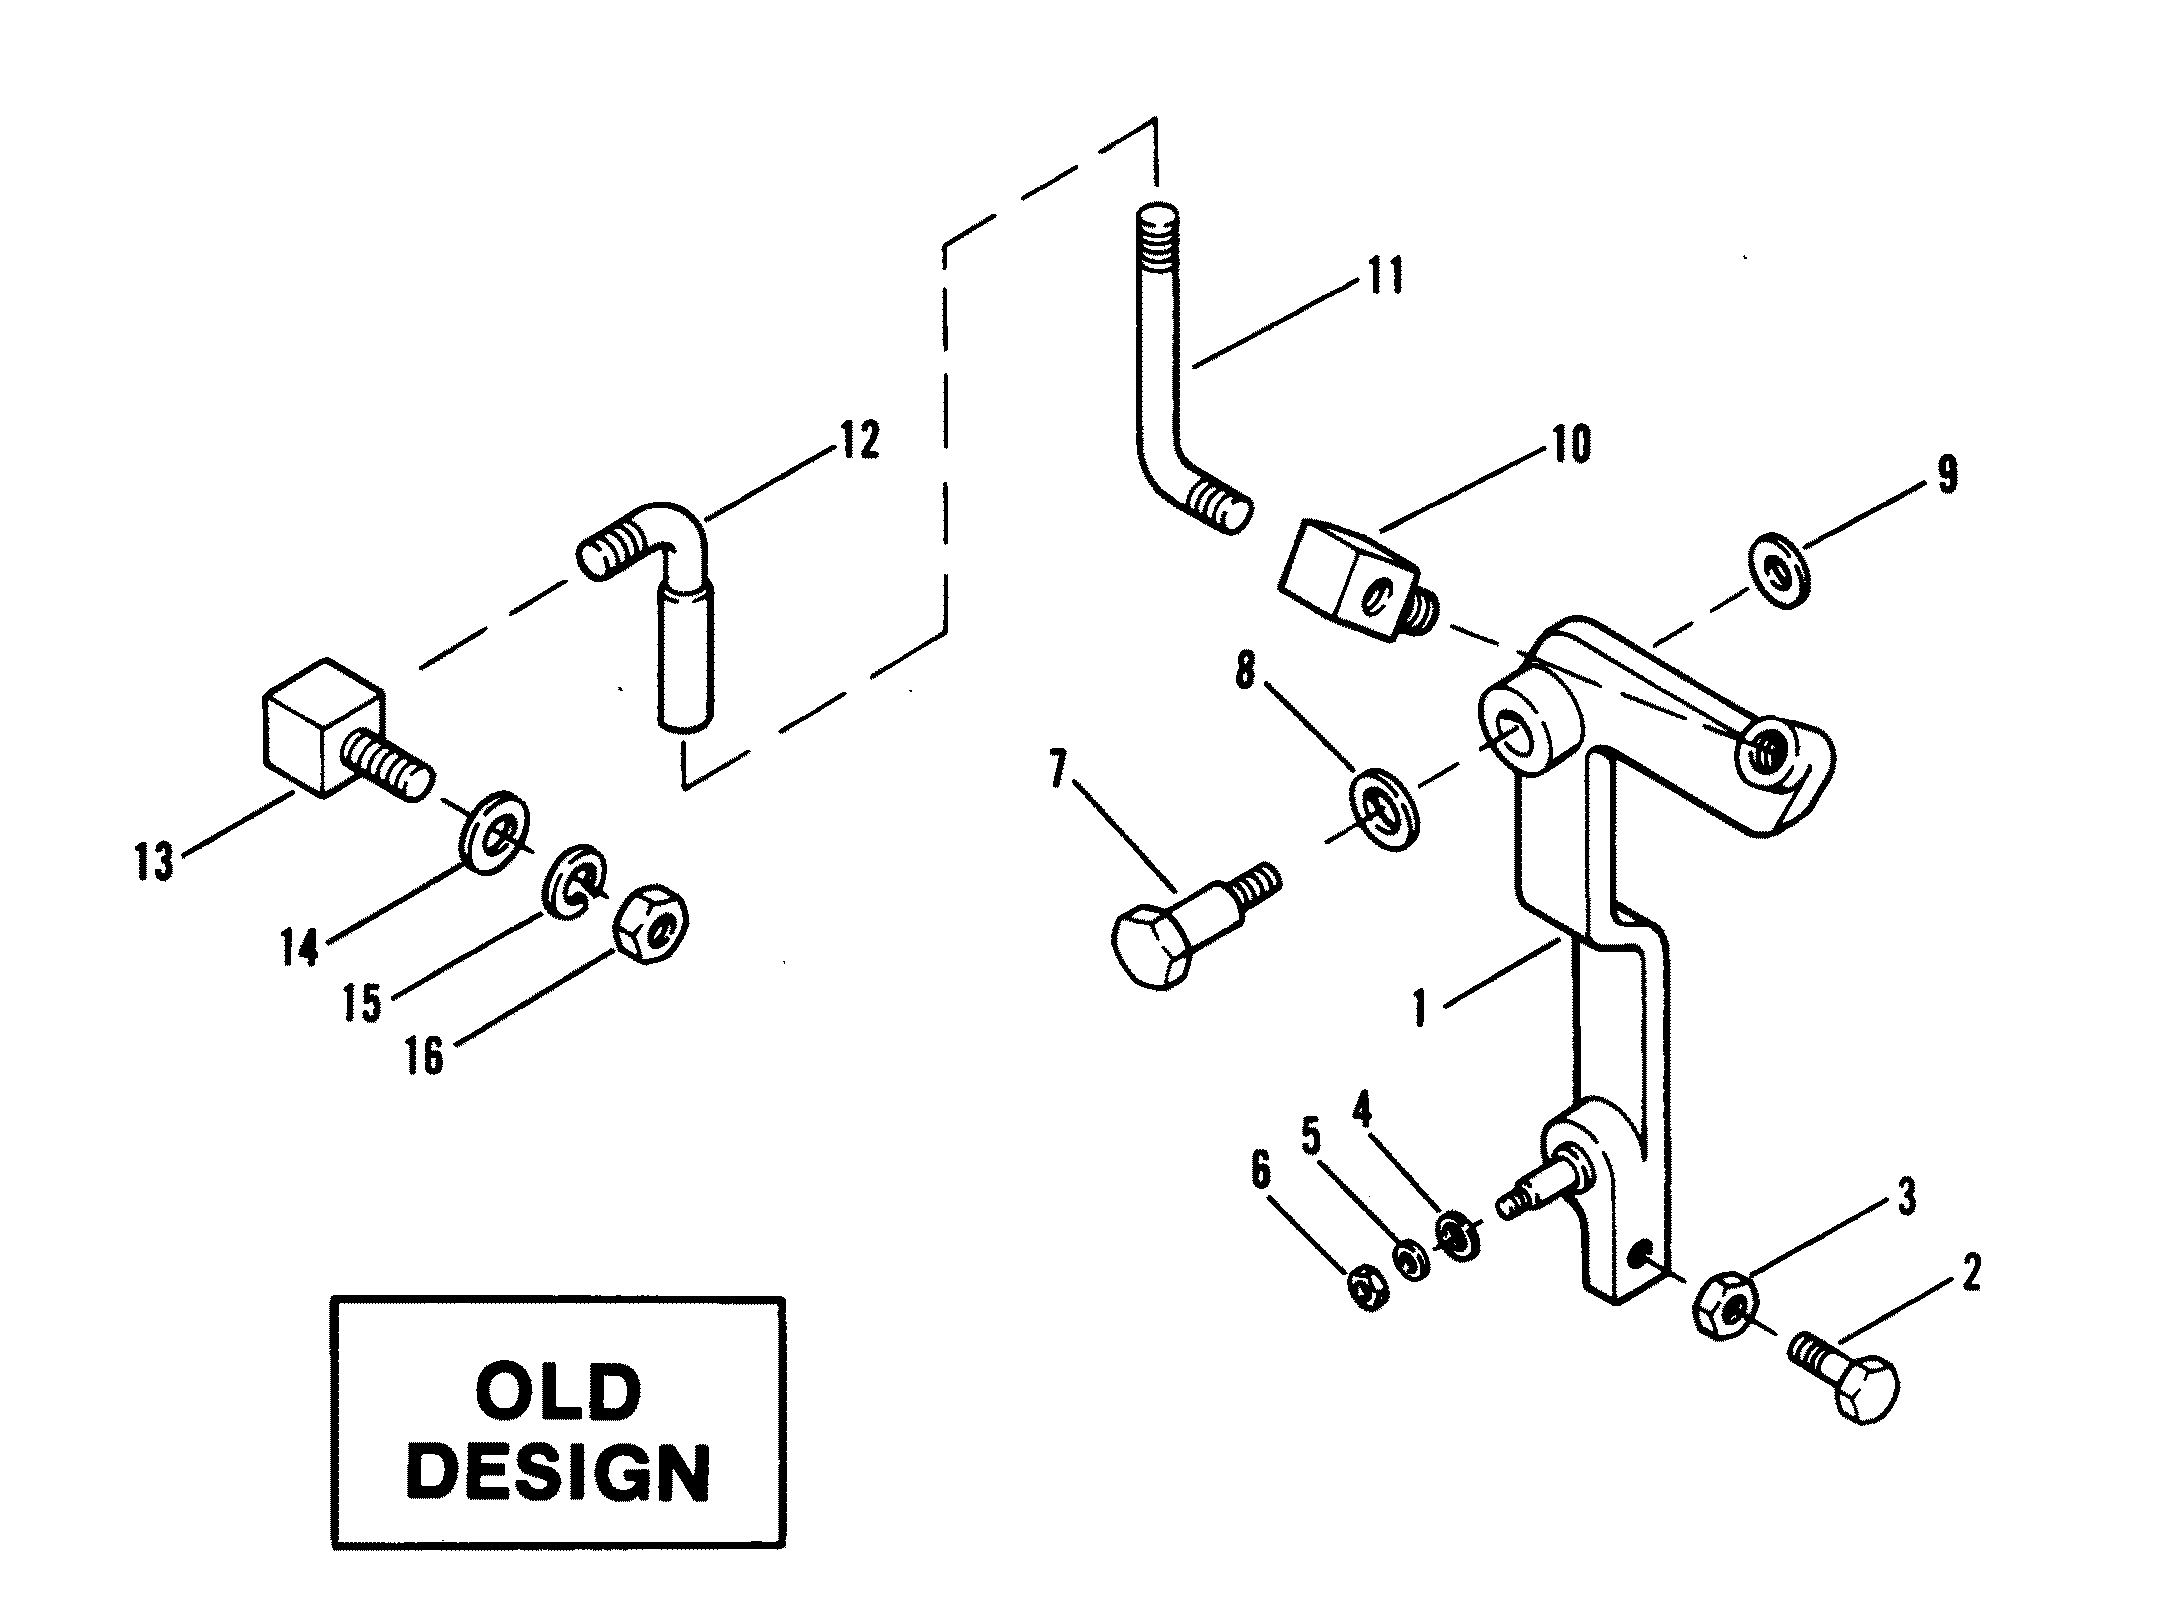 Throttle Components Old Design For Mercruiser 120 H P 2